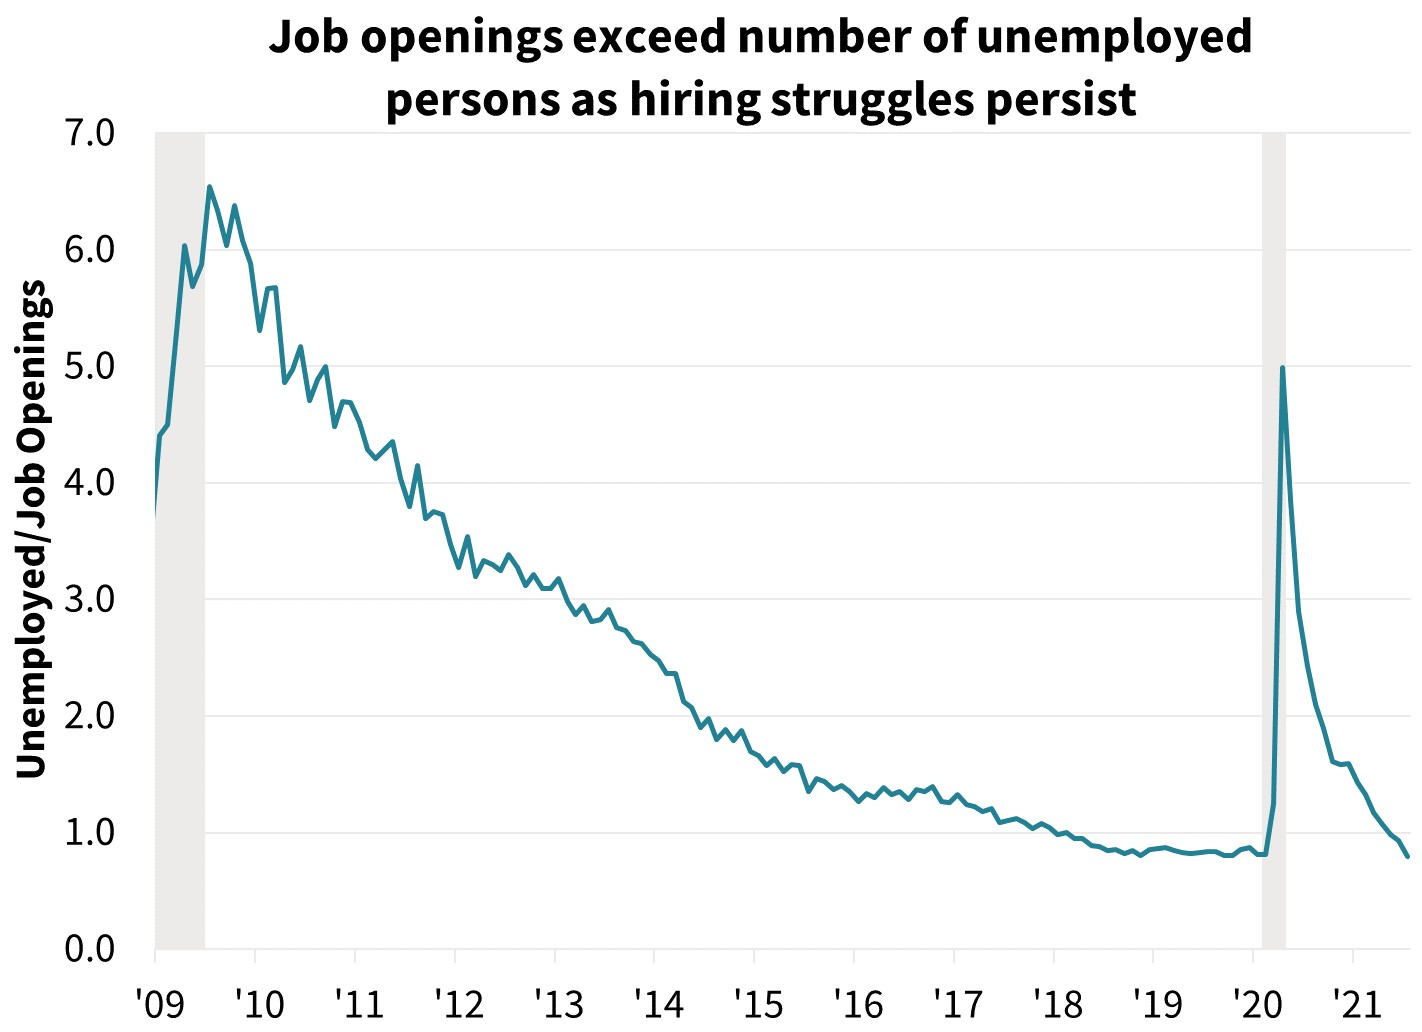 Job openings exceed number of unemployed persons as hiring struggles persists